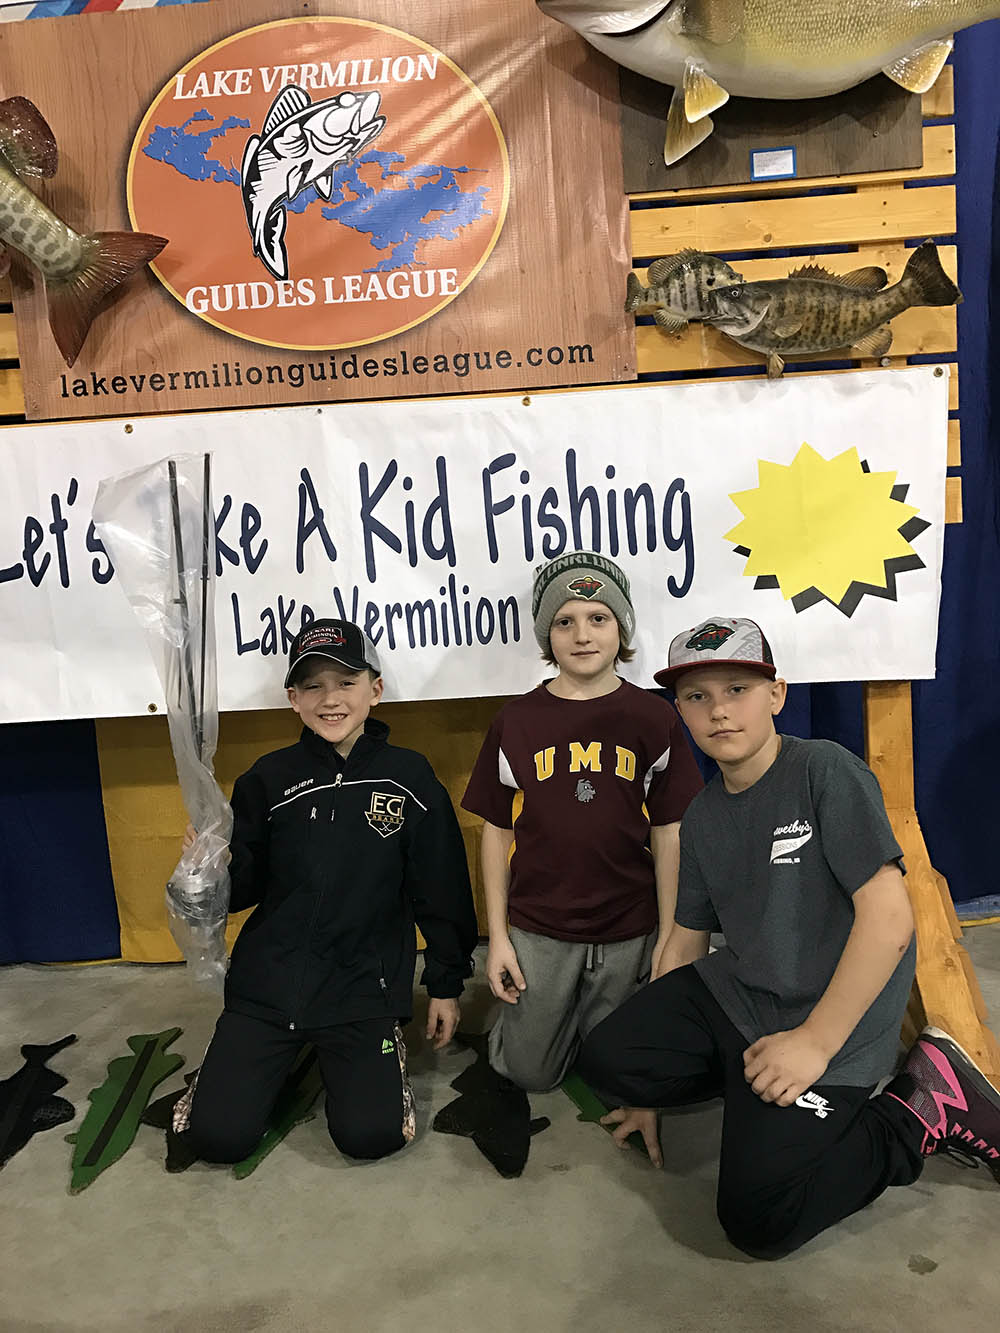 Kids posing for Lets Take a Kid Fishing event